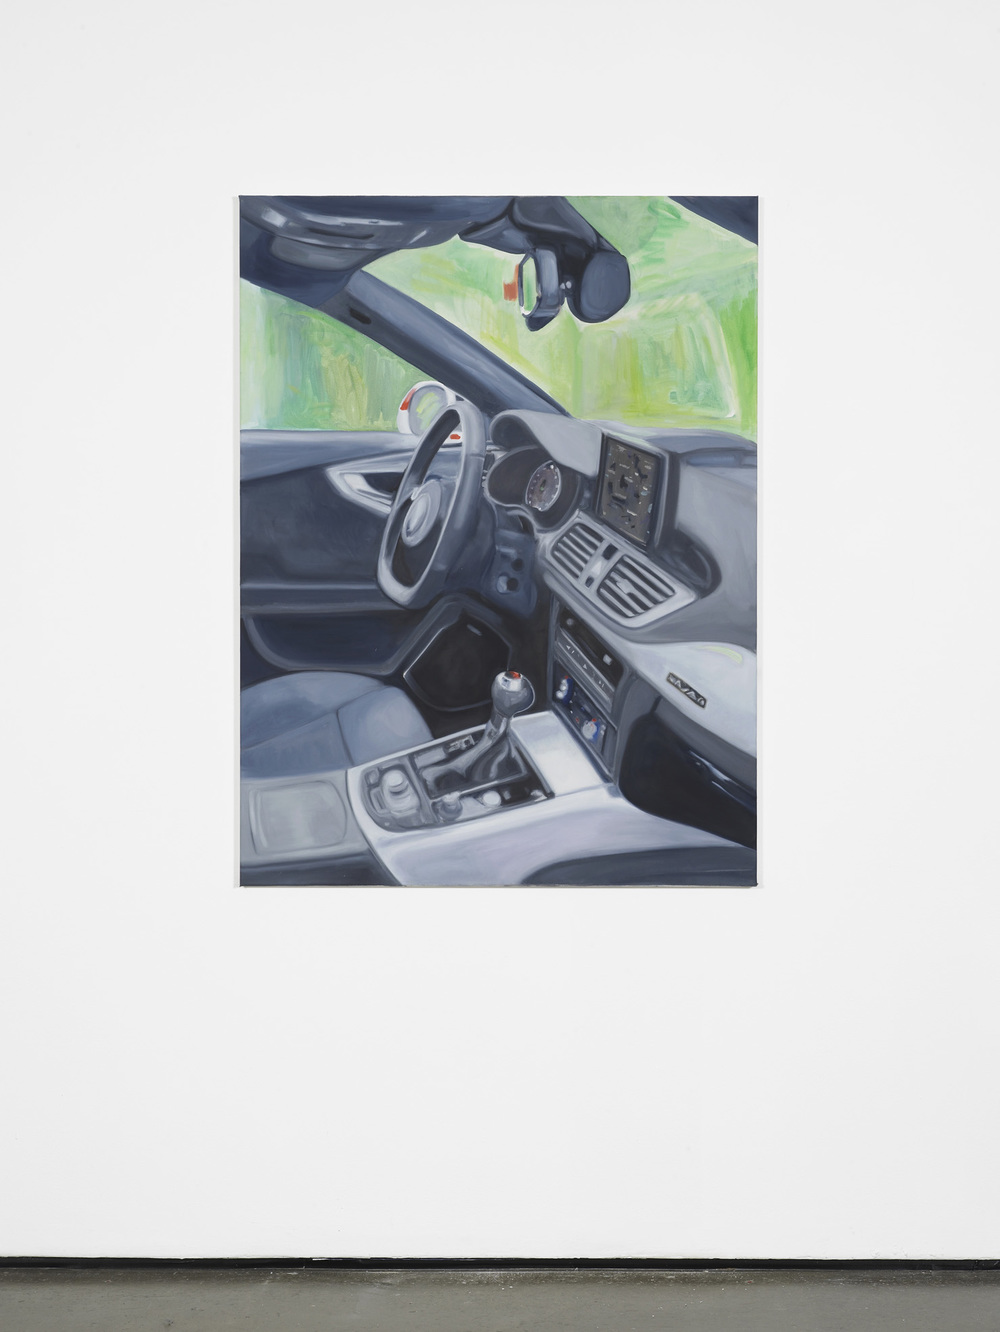 Jill Mulleady Beating the system II 2015 Oil on canvas 120 x 90 cm / 47.2 x 35.4 in HS12-JM5452P